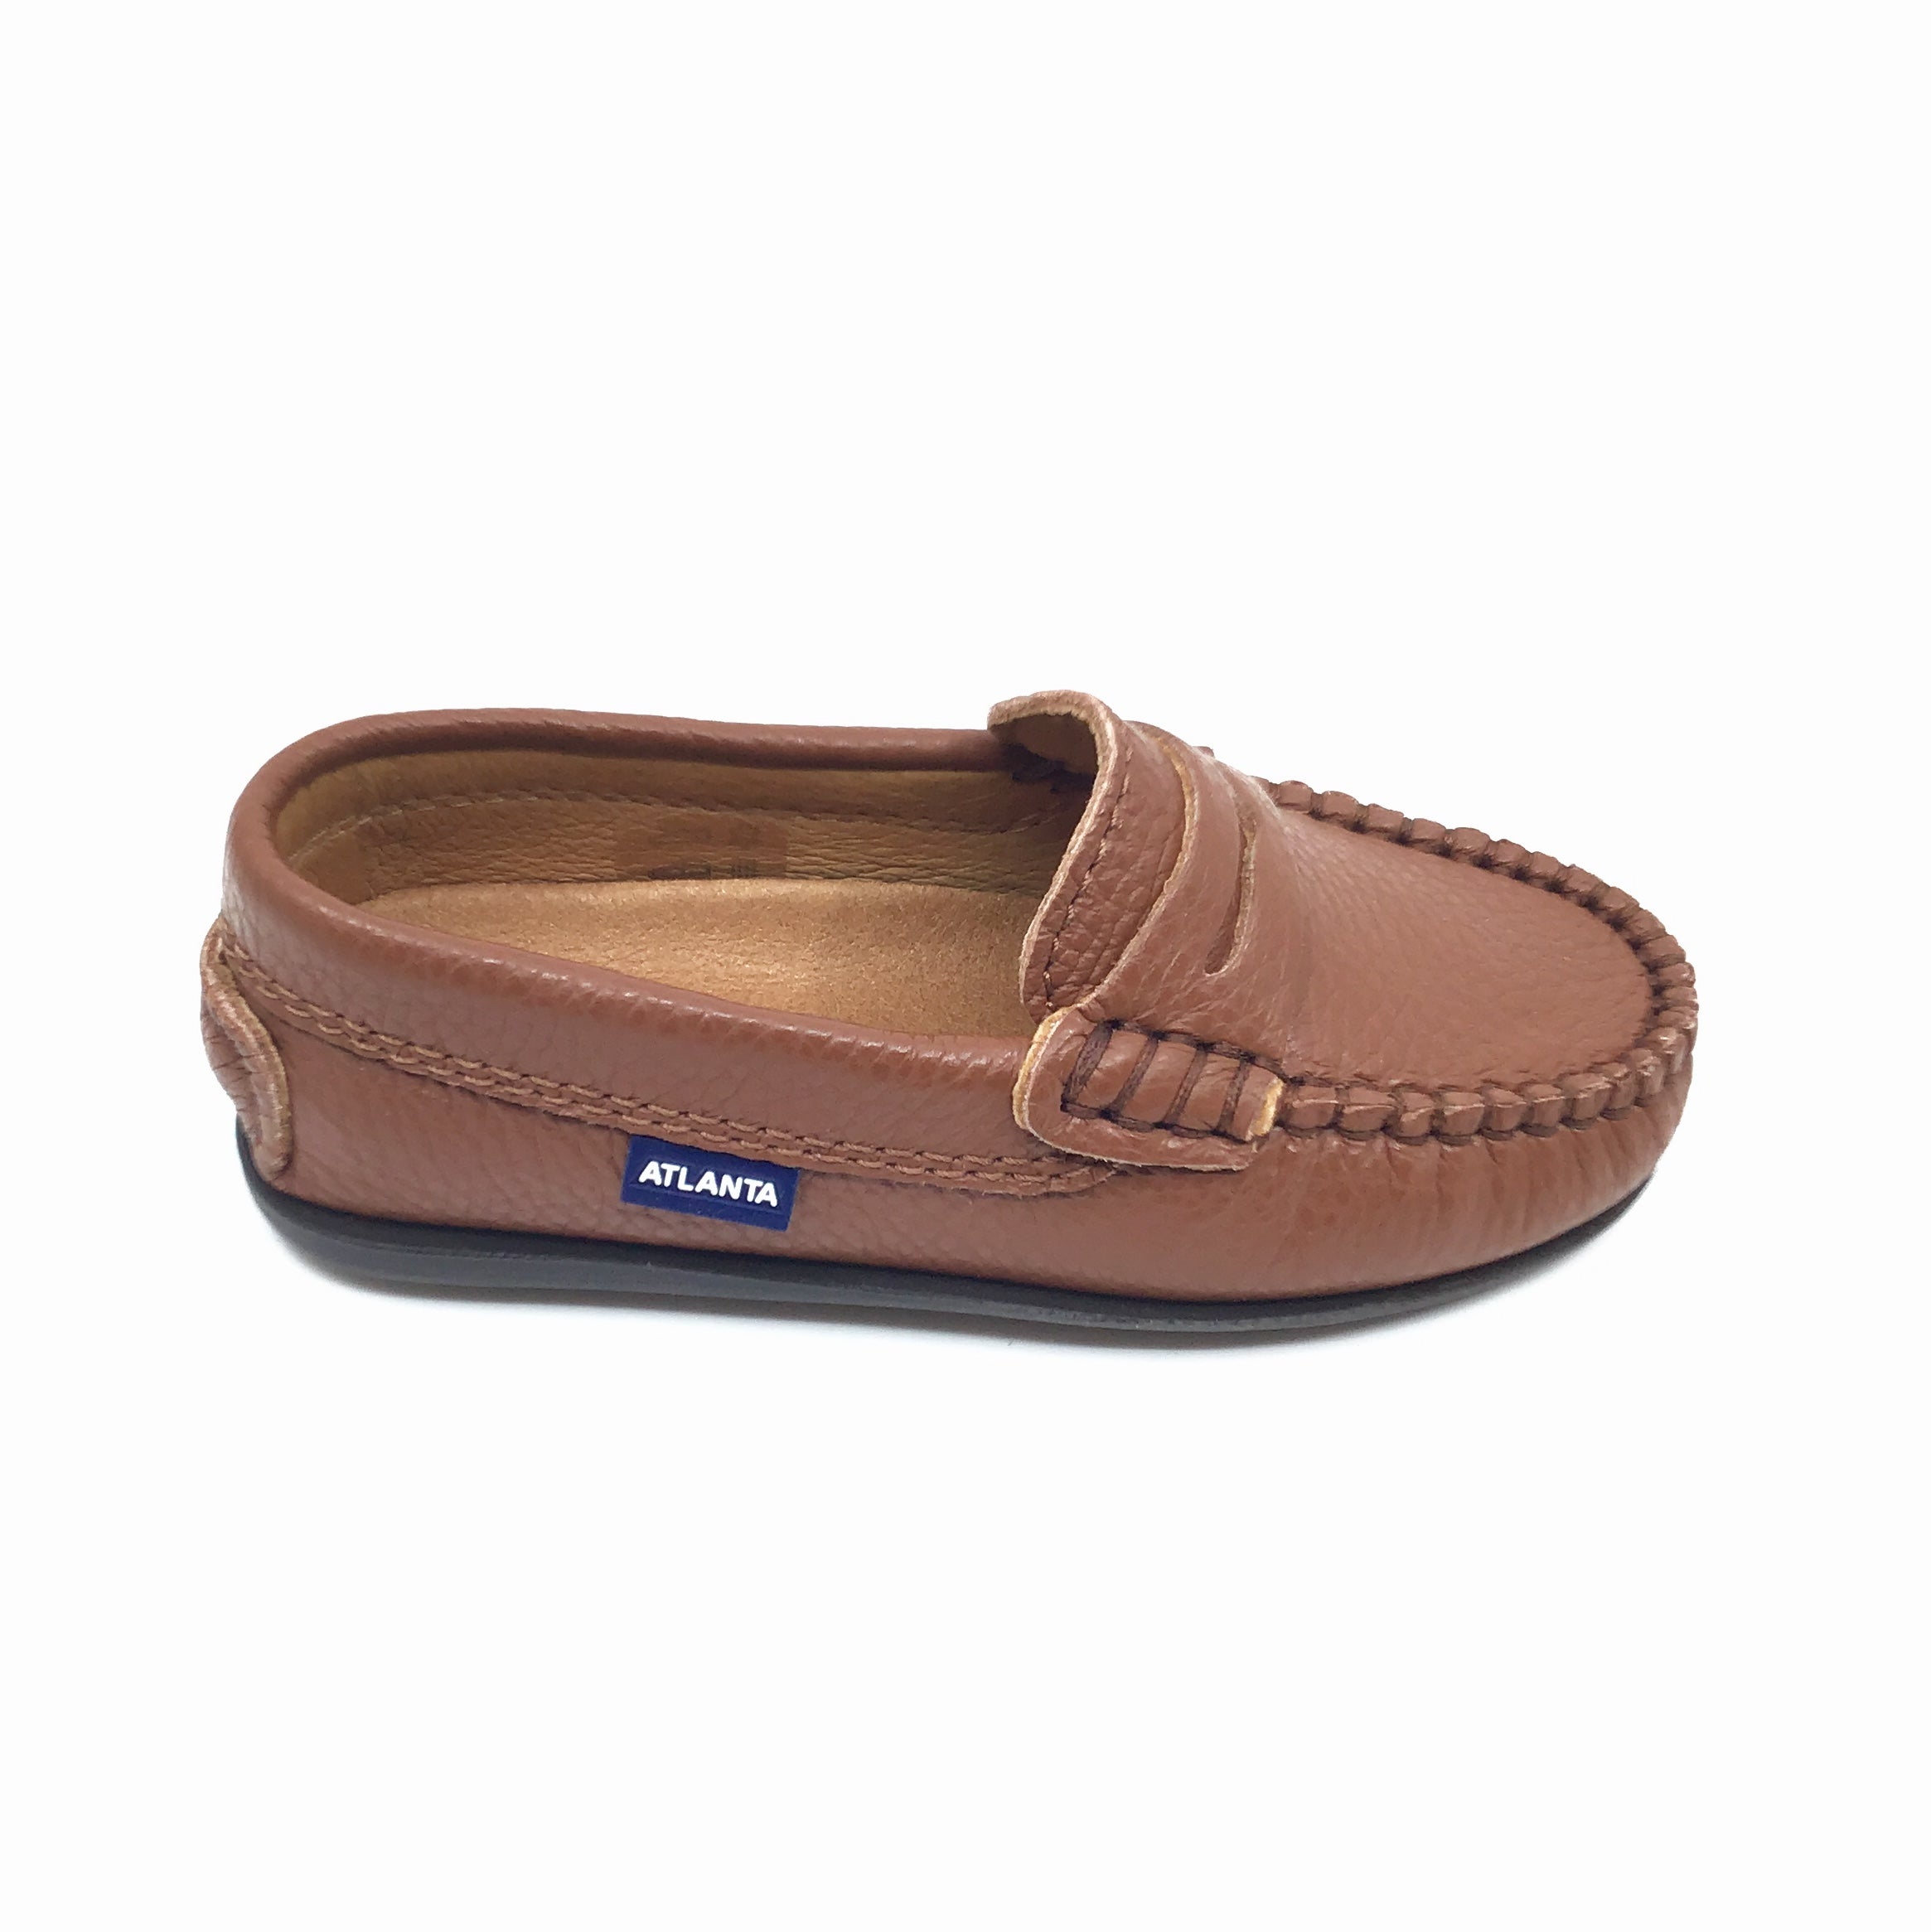 Atlanta Brown Penny Loafer